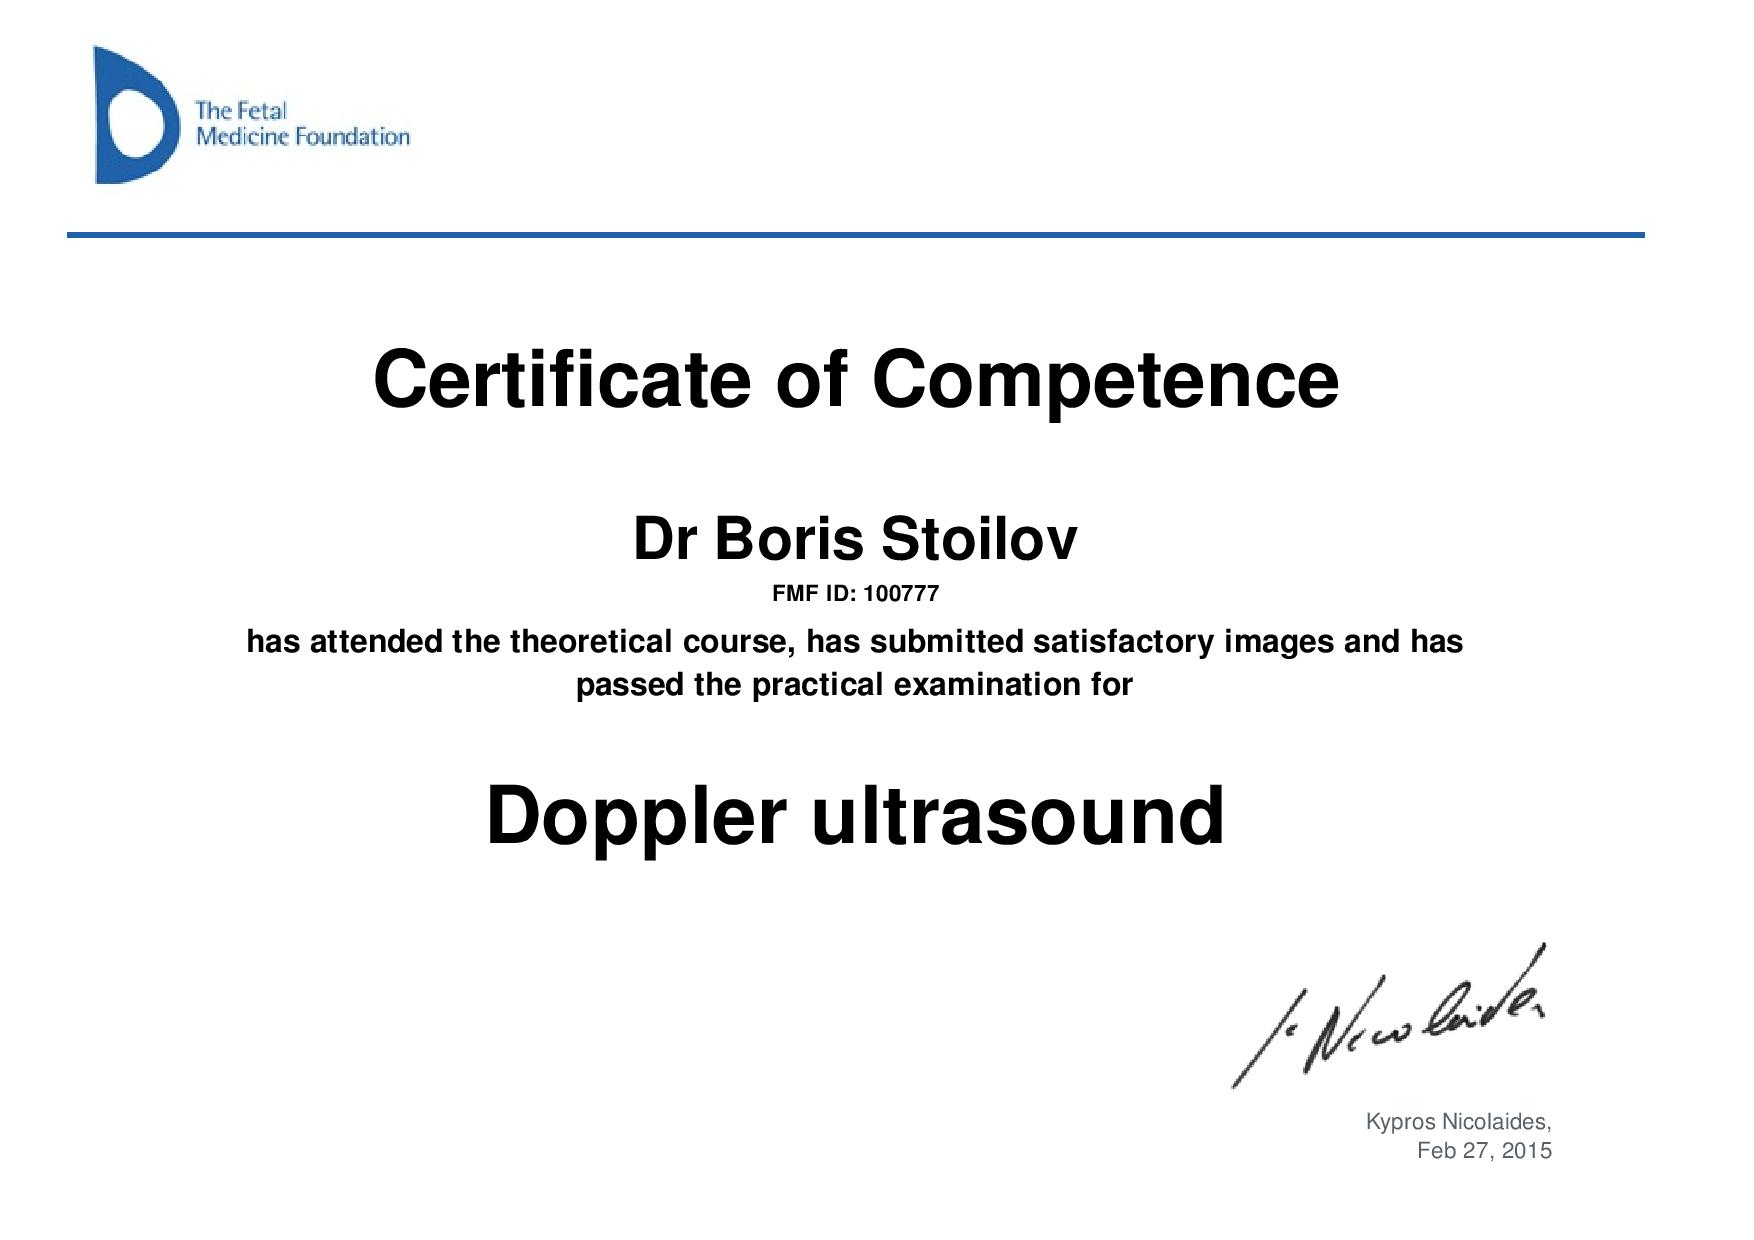 Certificate of competence in Doppler ultrasound